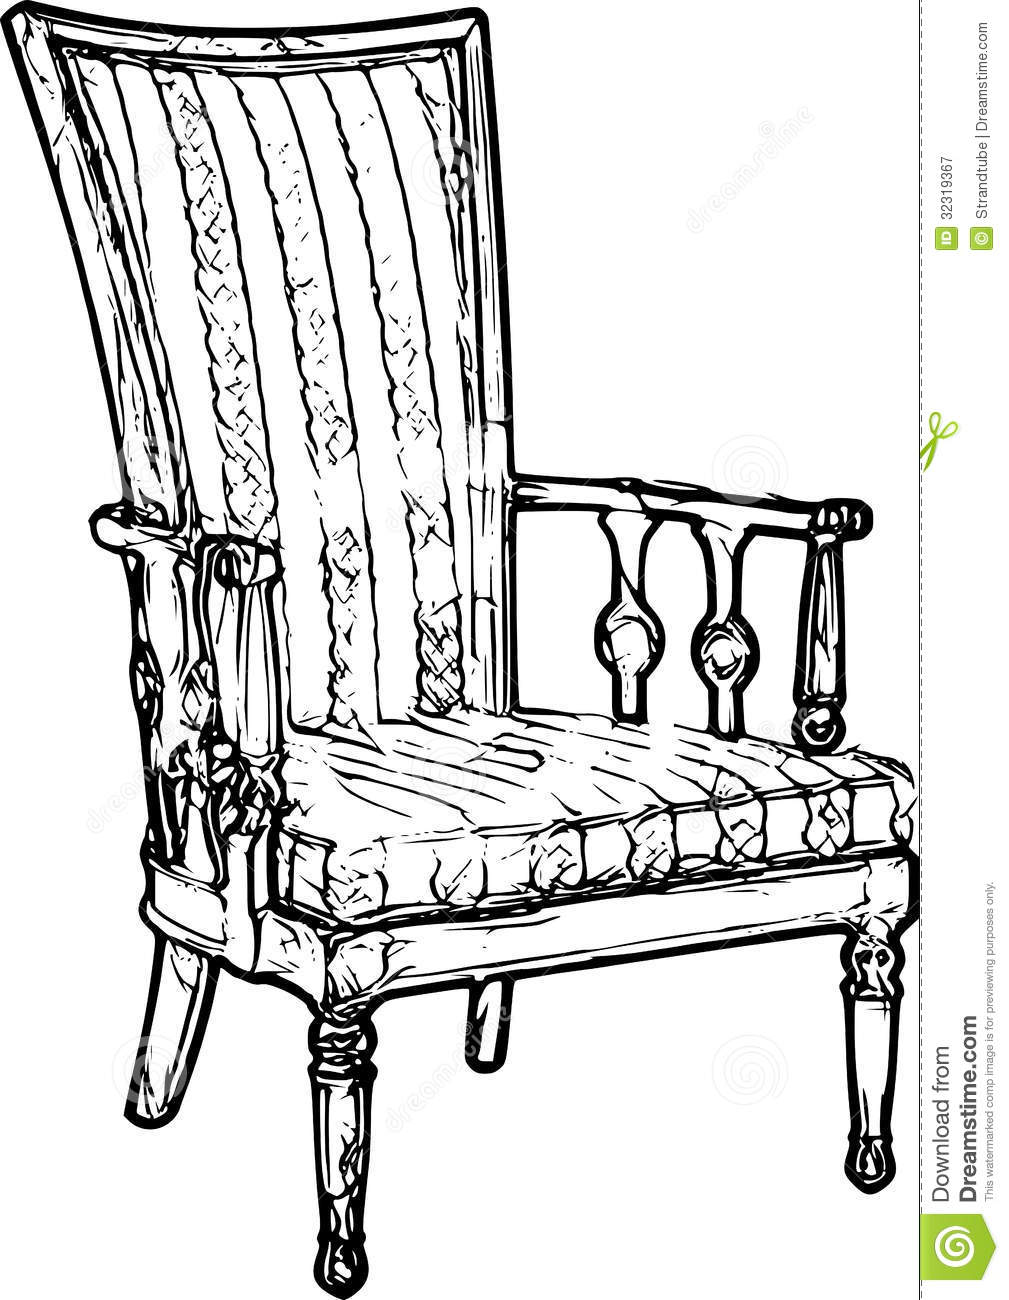 Chair sketch viewing gallery